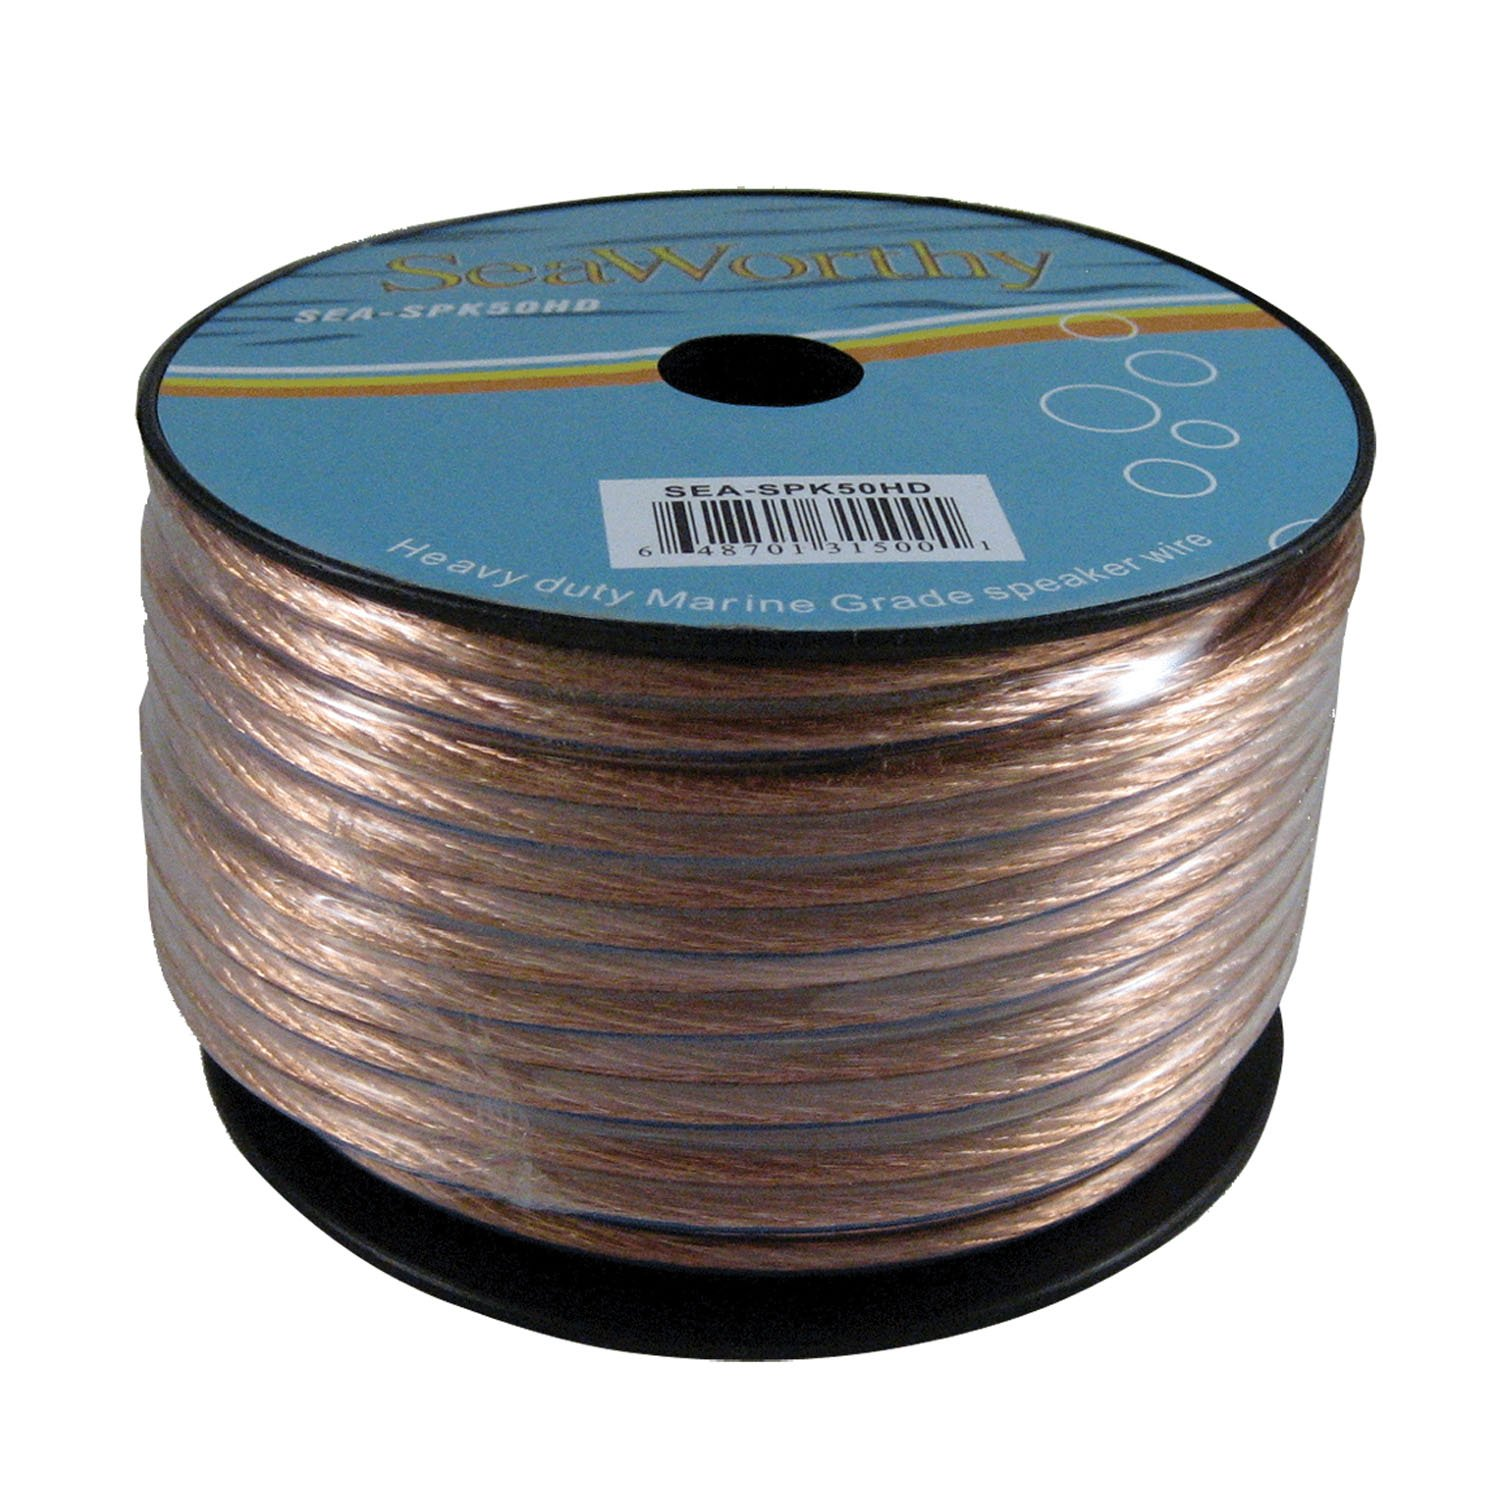 SEAWORTHY 18 GAUGE 50\' MARINE SPEAKER WIRE: Amazon.co.uk: Electronics